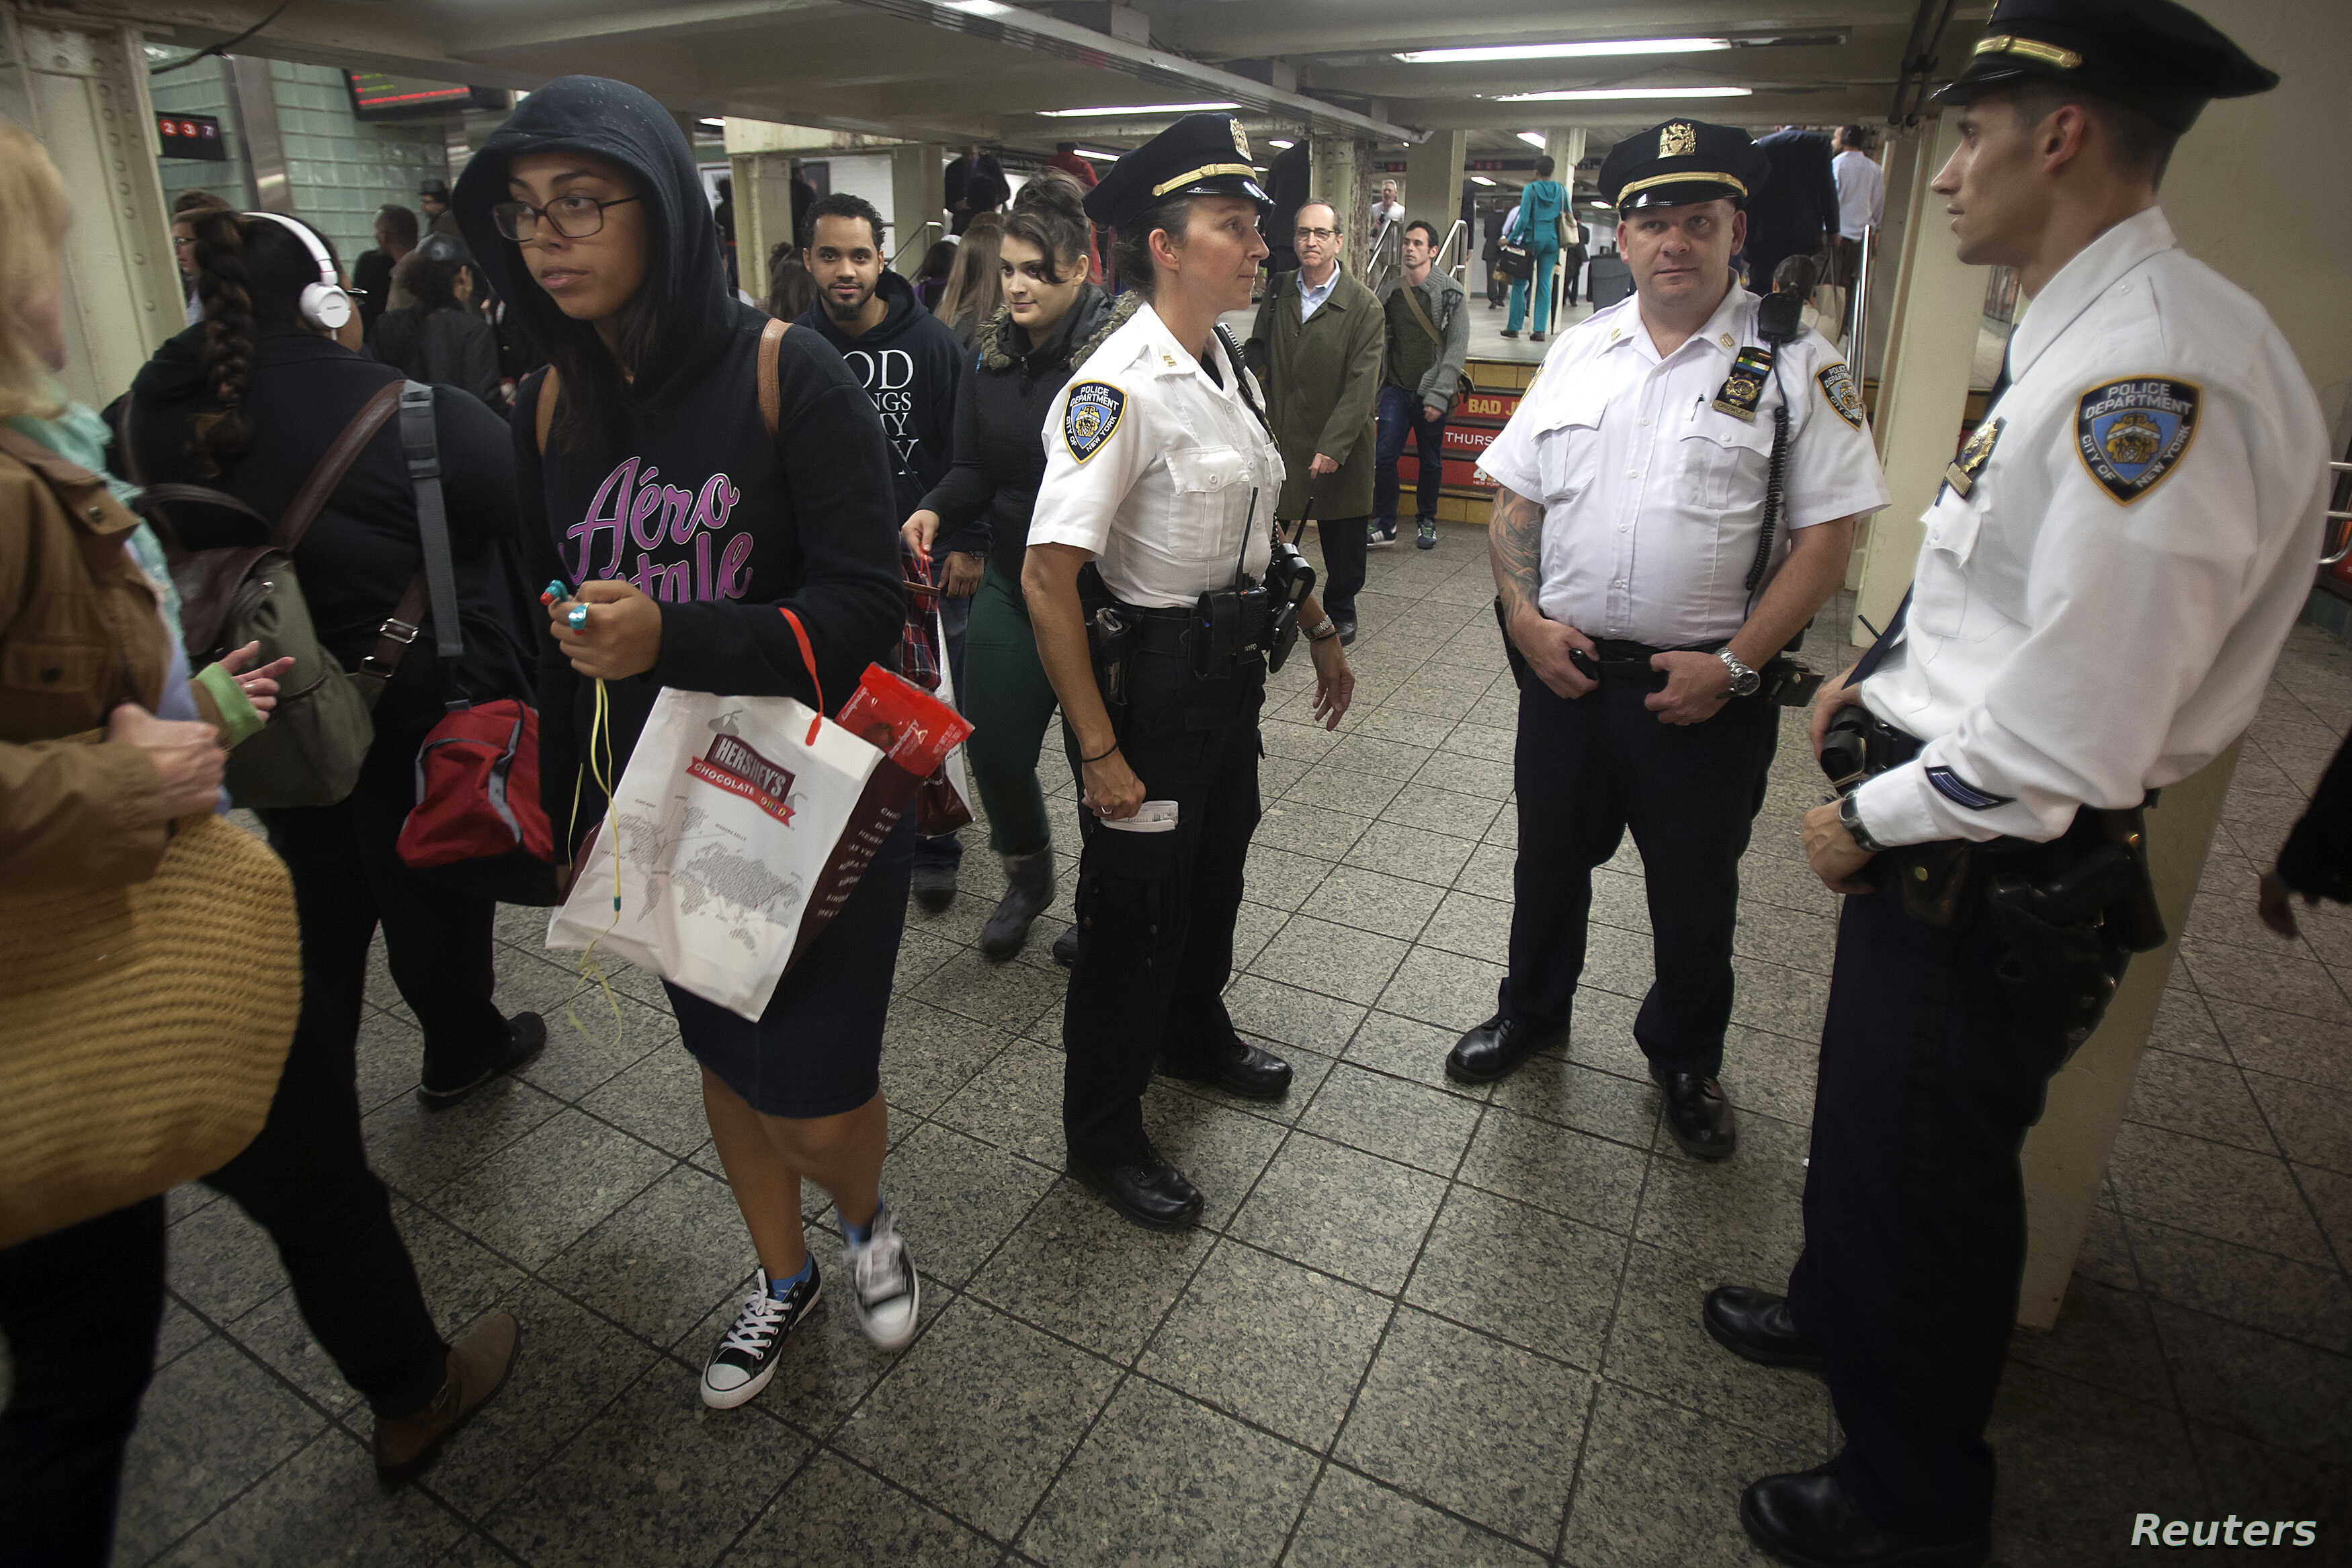 Members of the New York Police Department stand and talk at the Times Square subway station in the Manhattan borough of New York, Sept. 25, 2014.